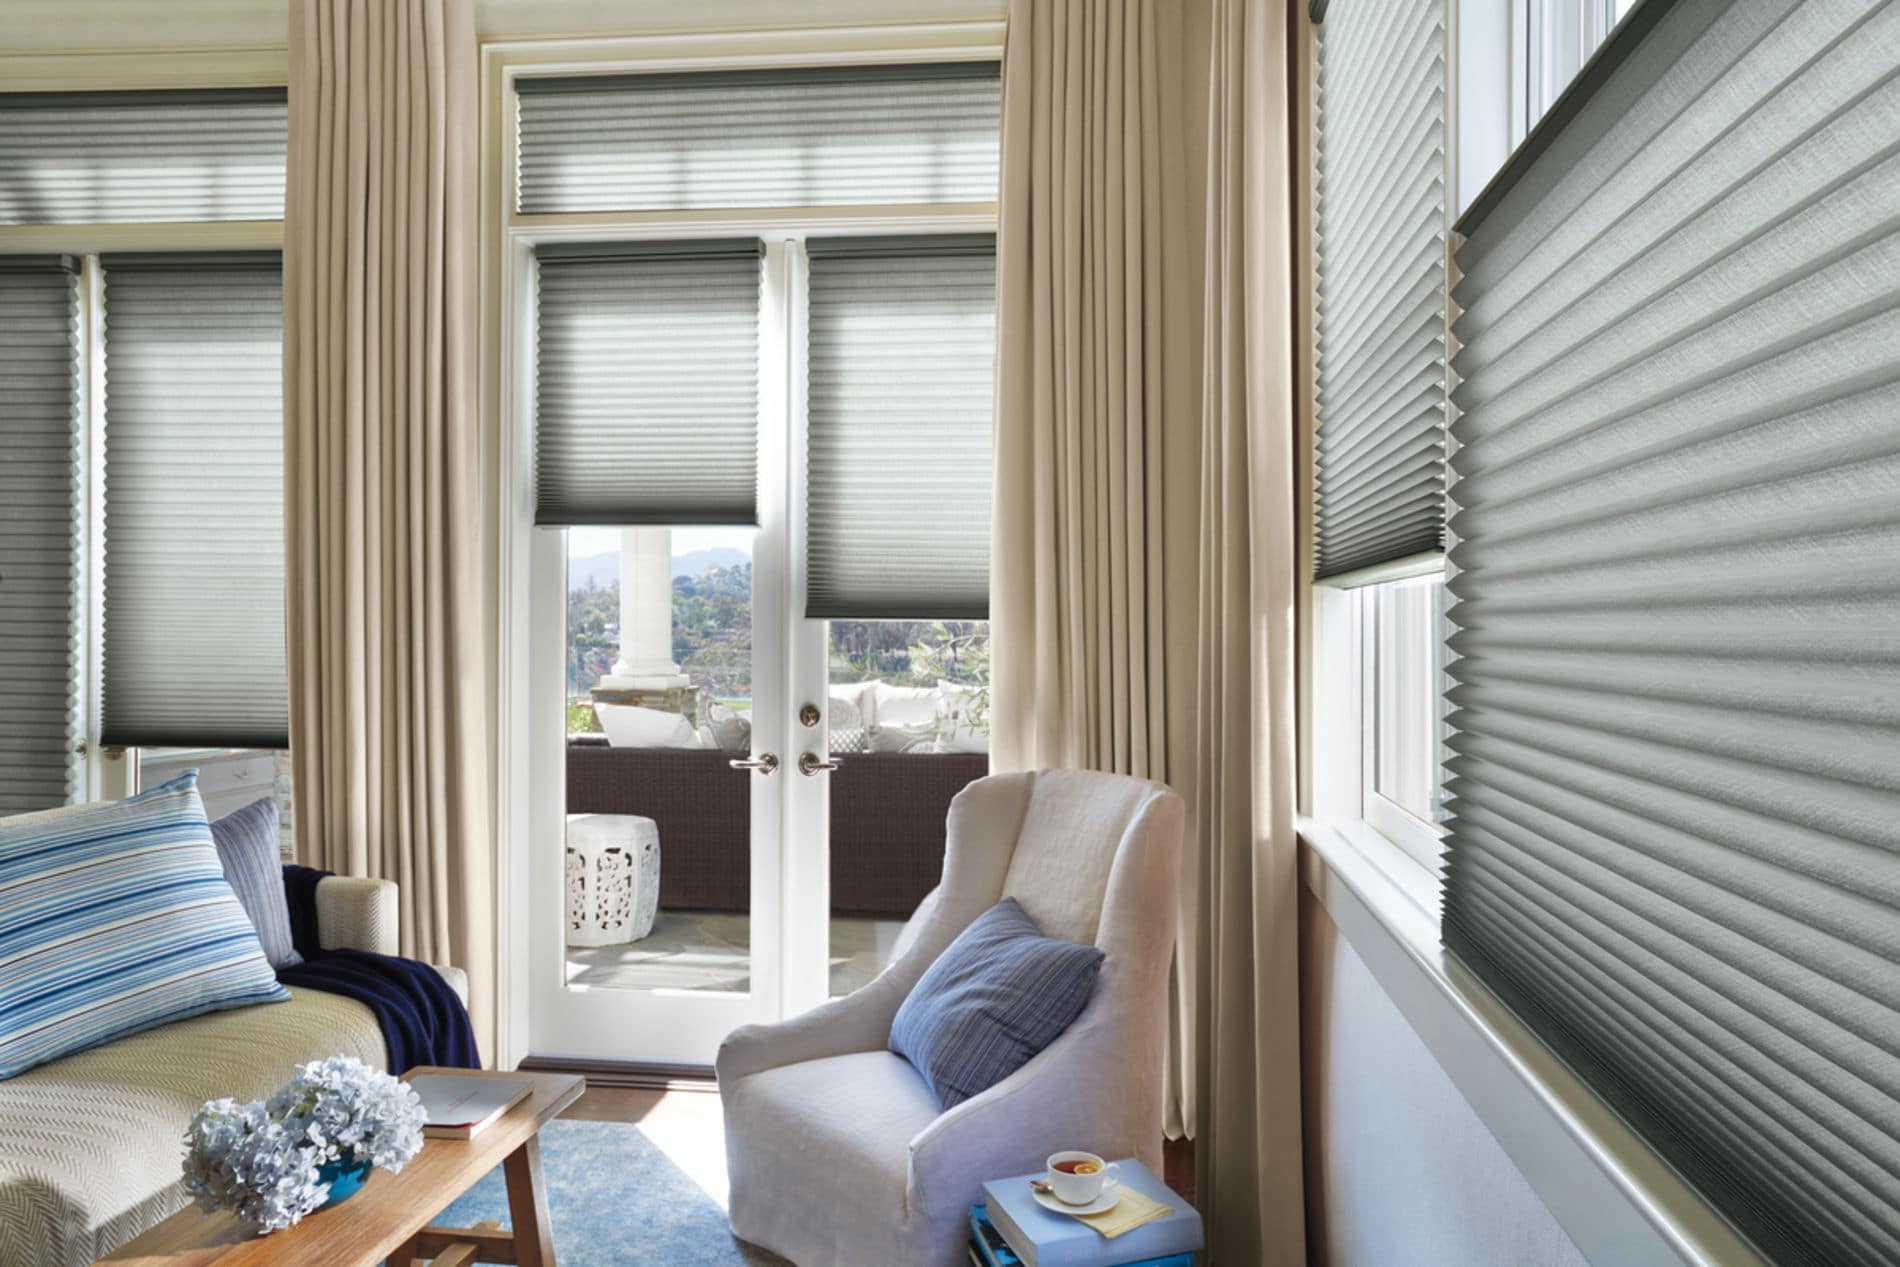 HunterDouglas by Shiretown Home Improvement Nantucket Shading, Fabric/Material: Sunscreen privacy shadings